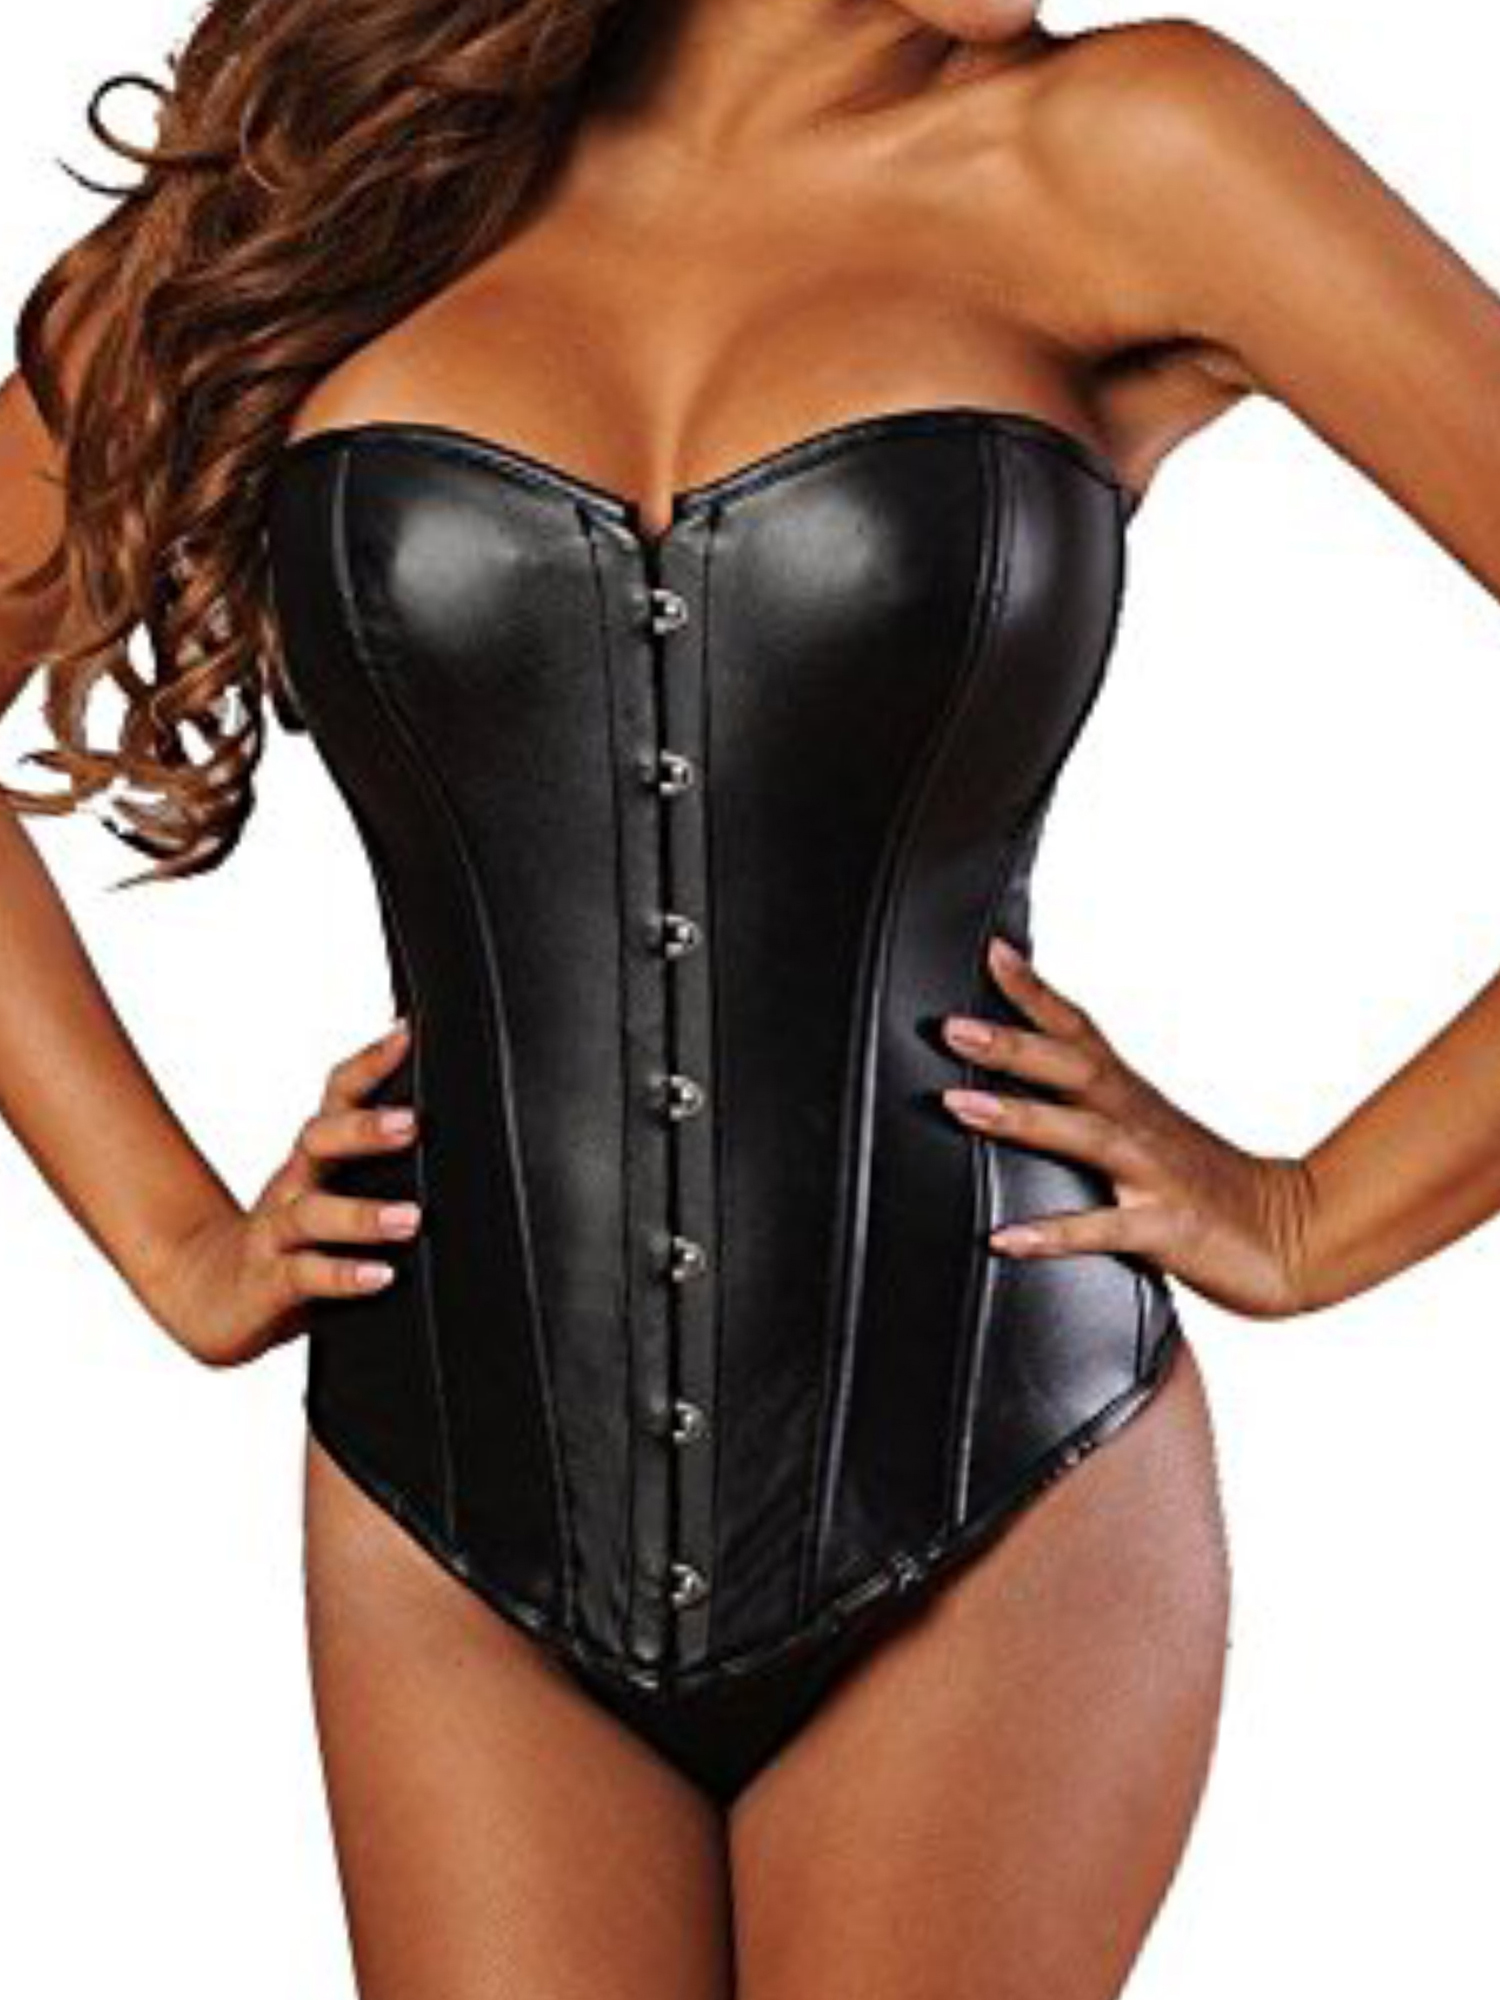 SAYFUT Fashion Women's Faux Leather Overbust Corset Busiter With G-string Body Shaper Top Bodice Black/Red Plus Size S-6XL